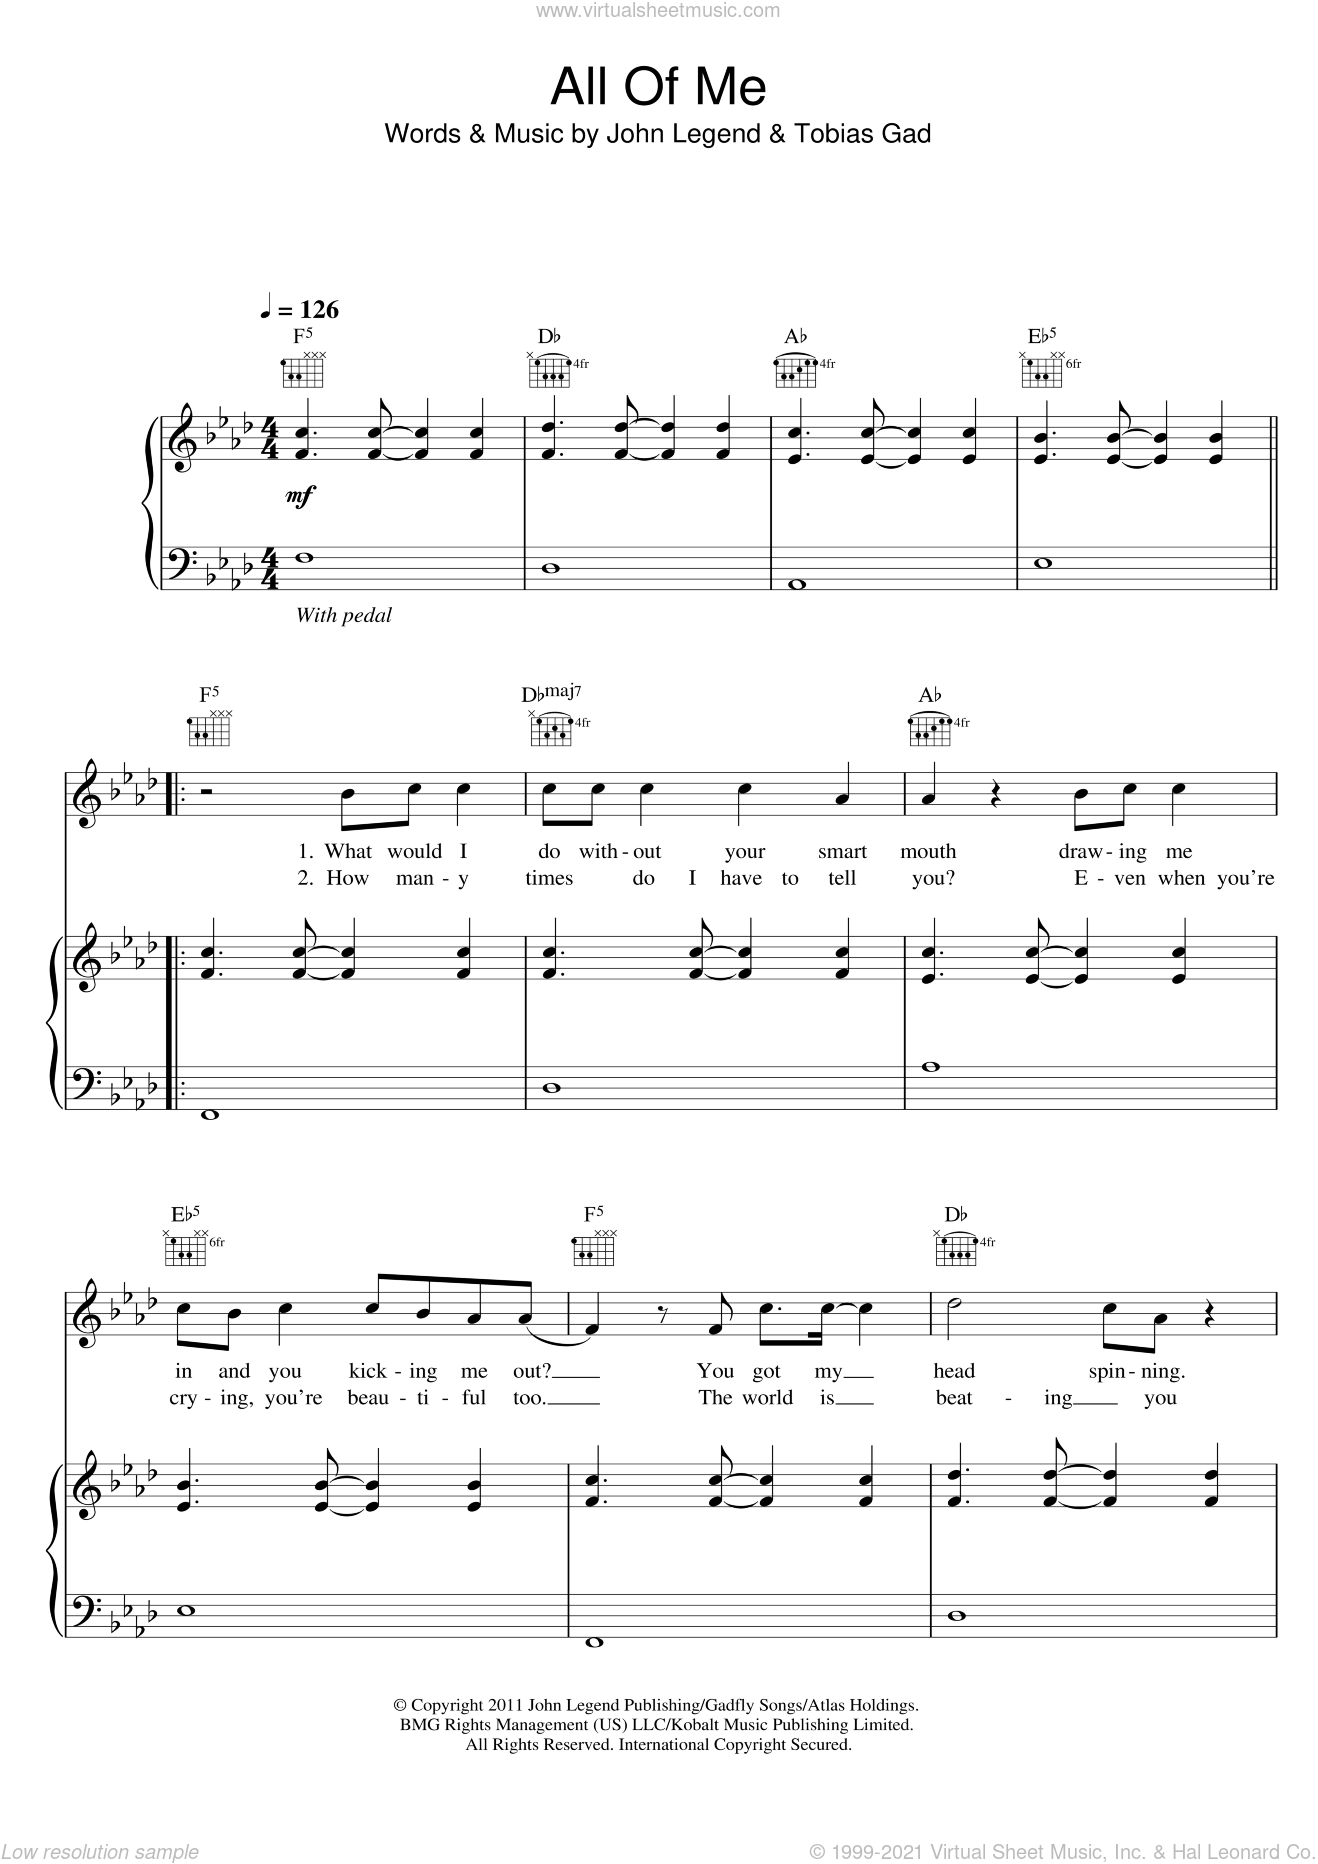 All Of Me sheet music for voice, piano or guitar by John Legend and Toby Gad. Score Image Preview.